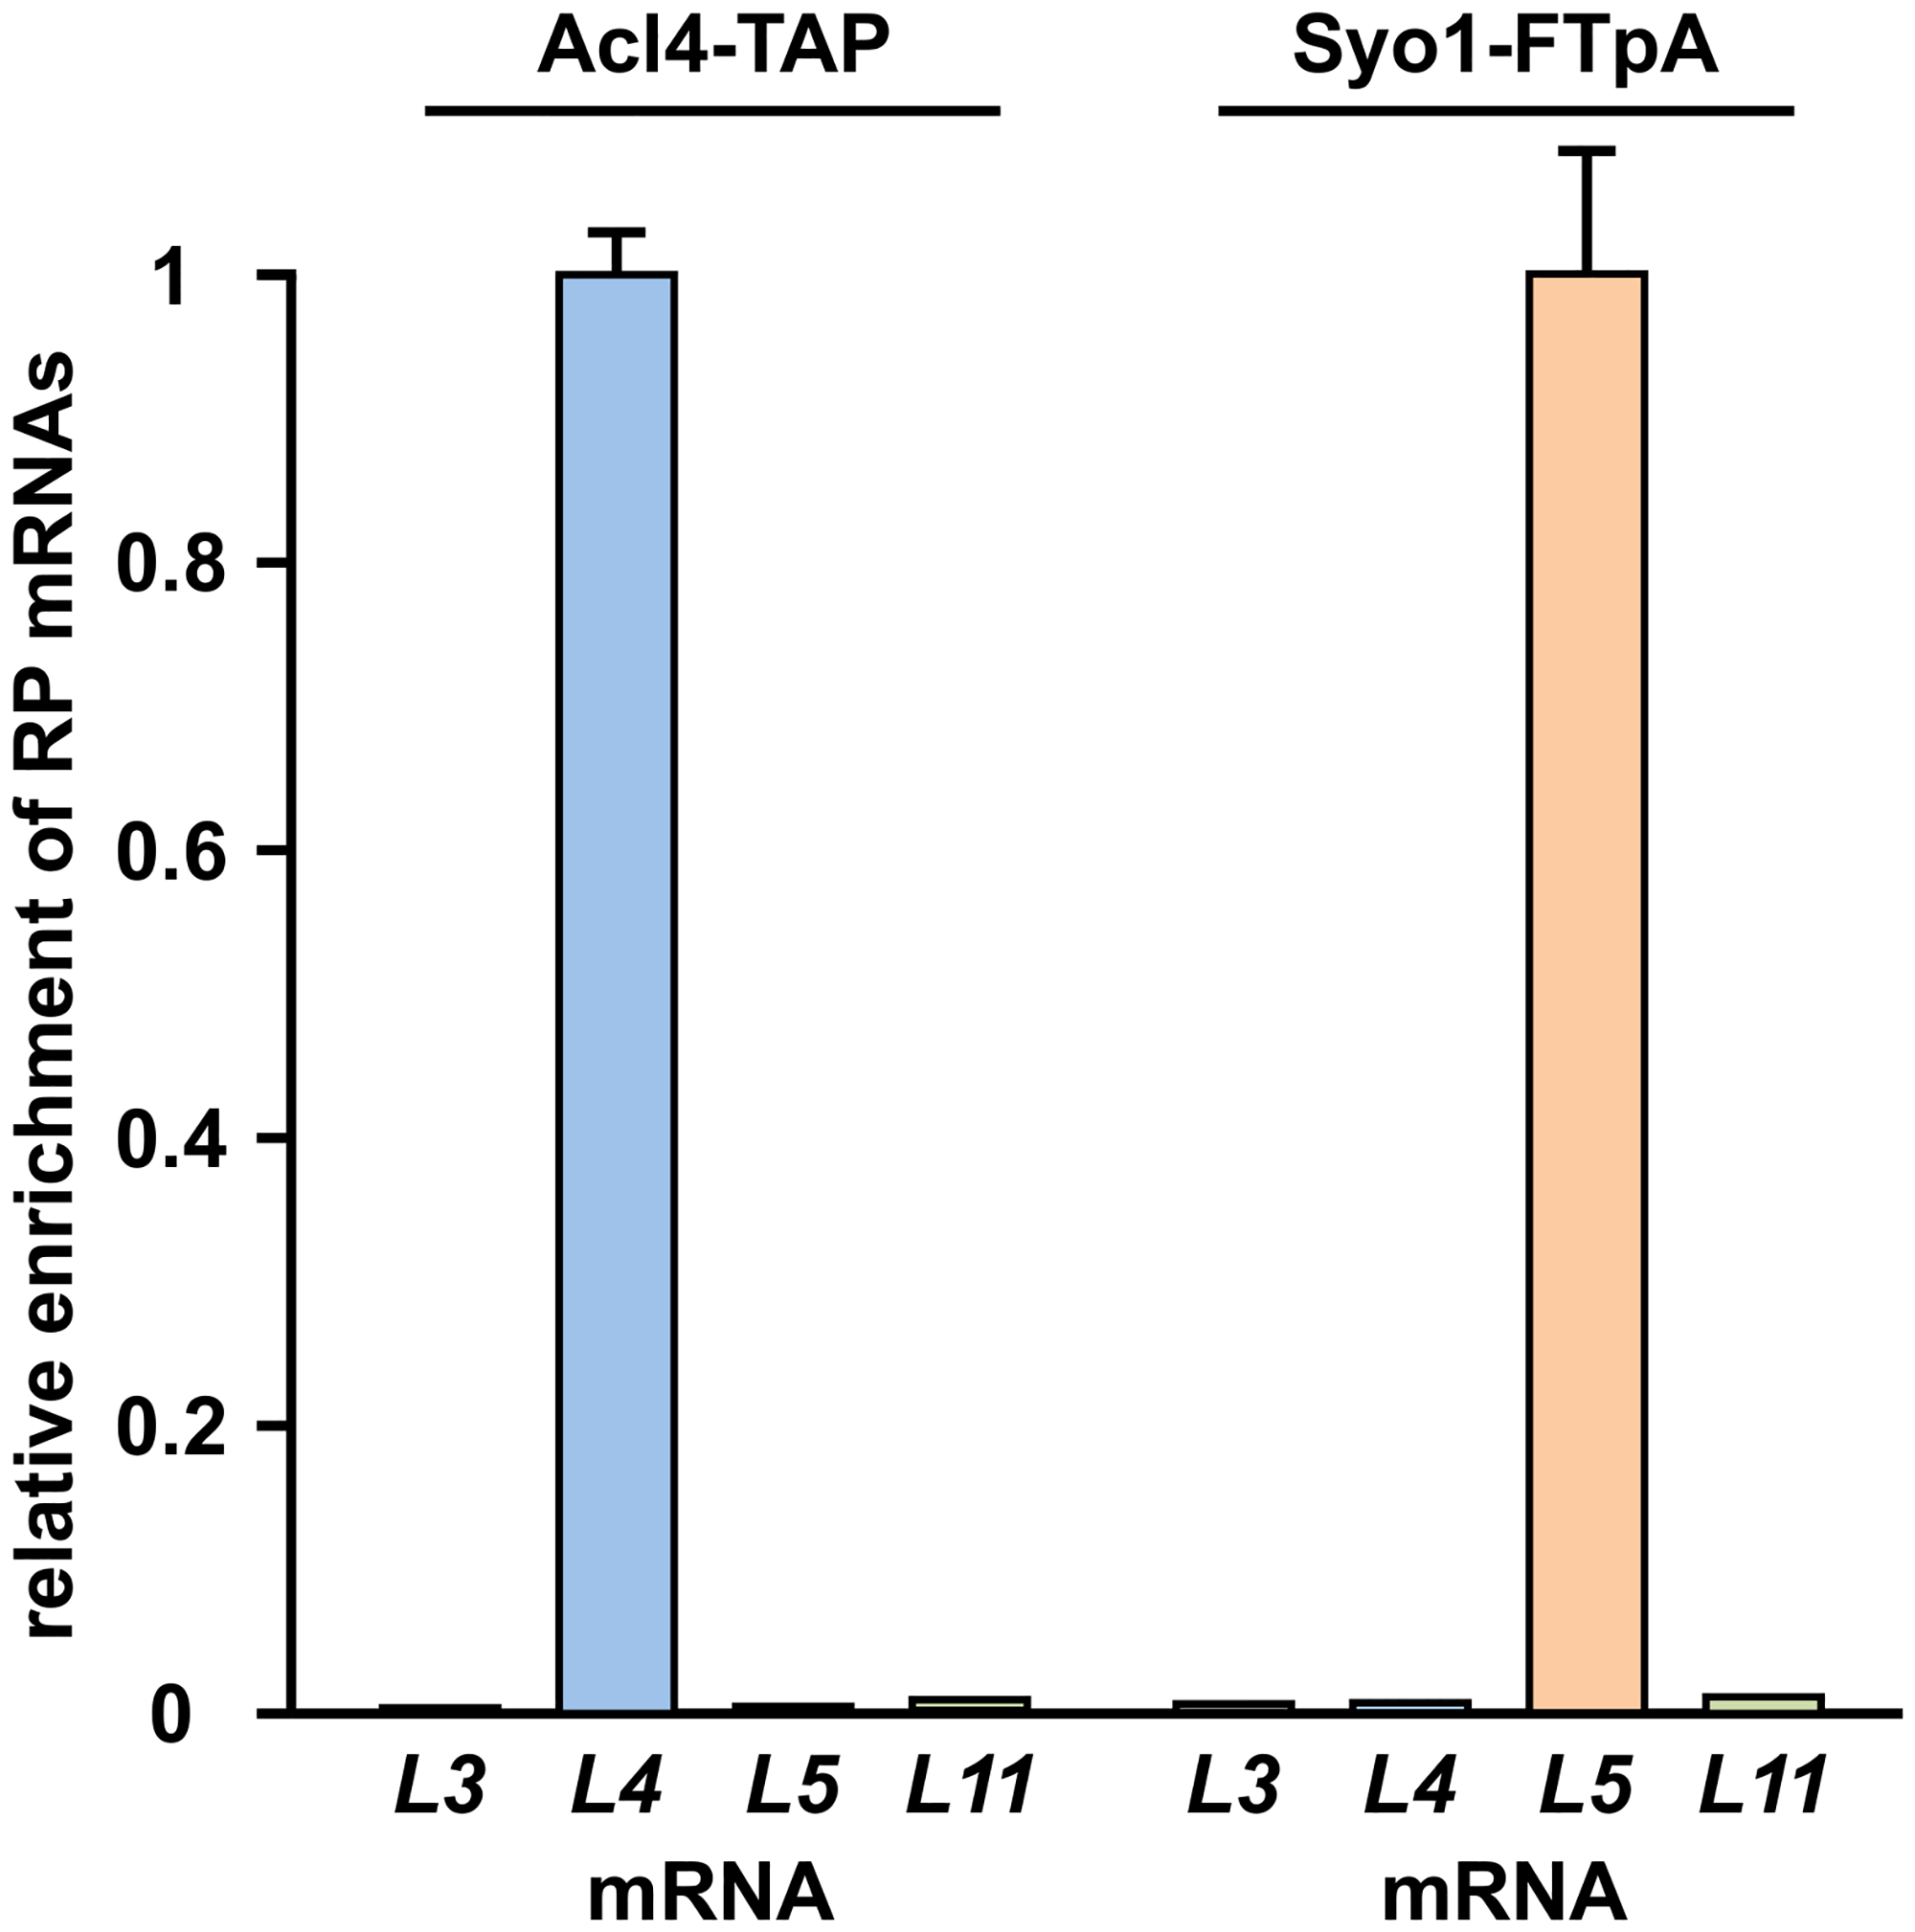 Co-translational capturing of Rpl4 by Acl4.